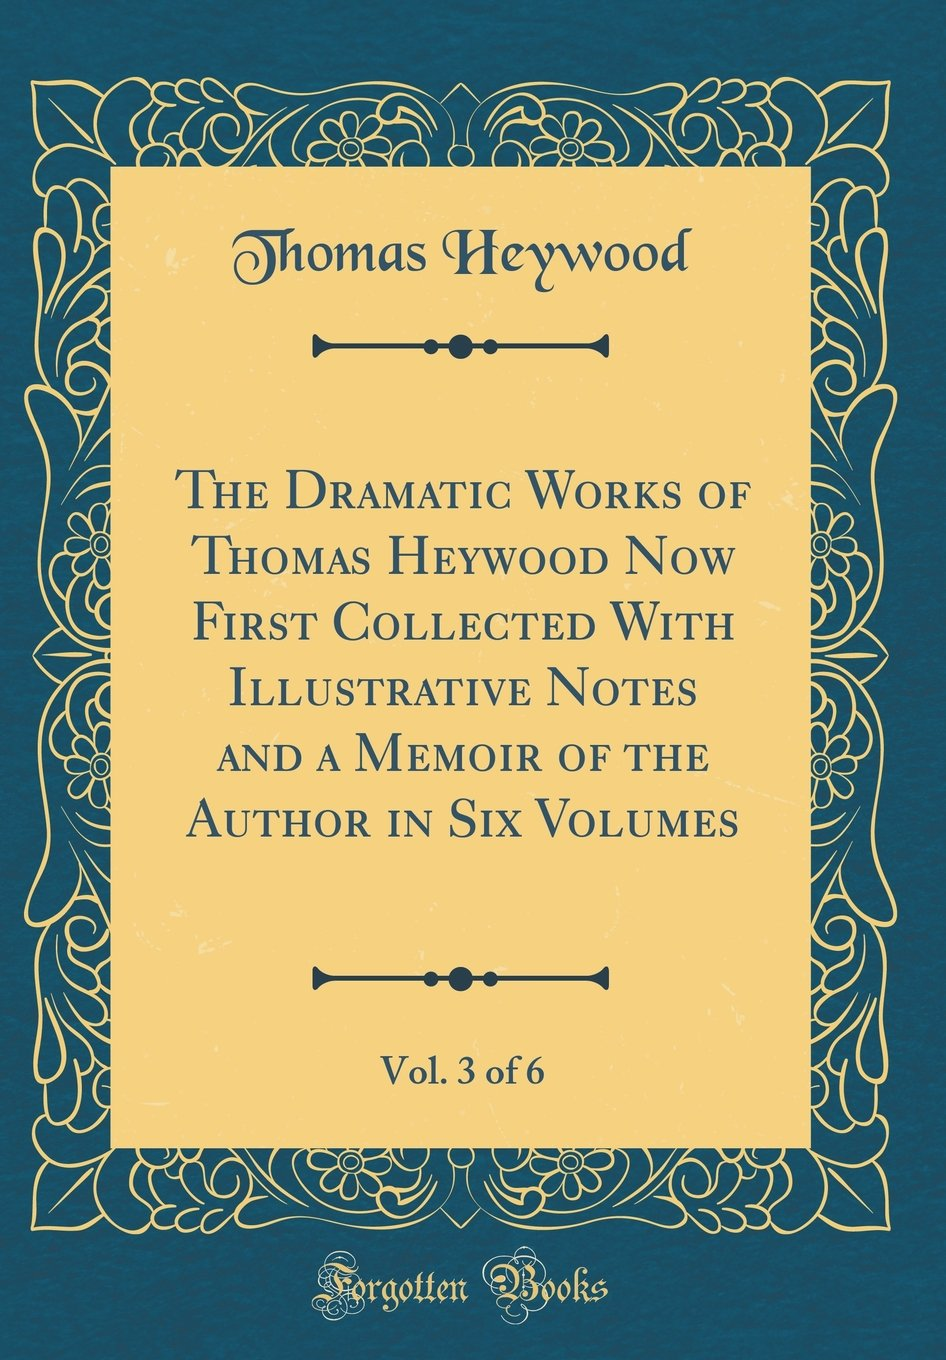 Download The Dramatic Works of Thomas Heywood Now First Collected With Illustrative Notes and a Memoir of the Author in Six Volumes, Vol. 3 of 6 (Classic Reprint) ebook